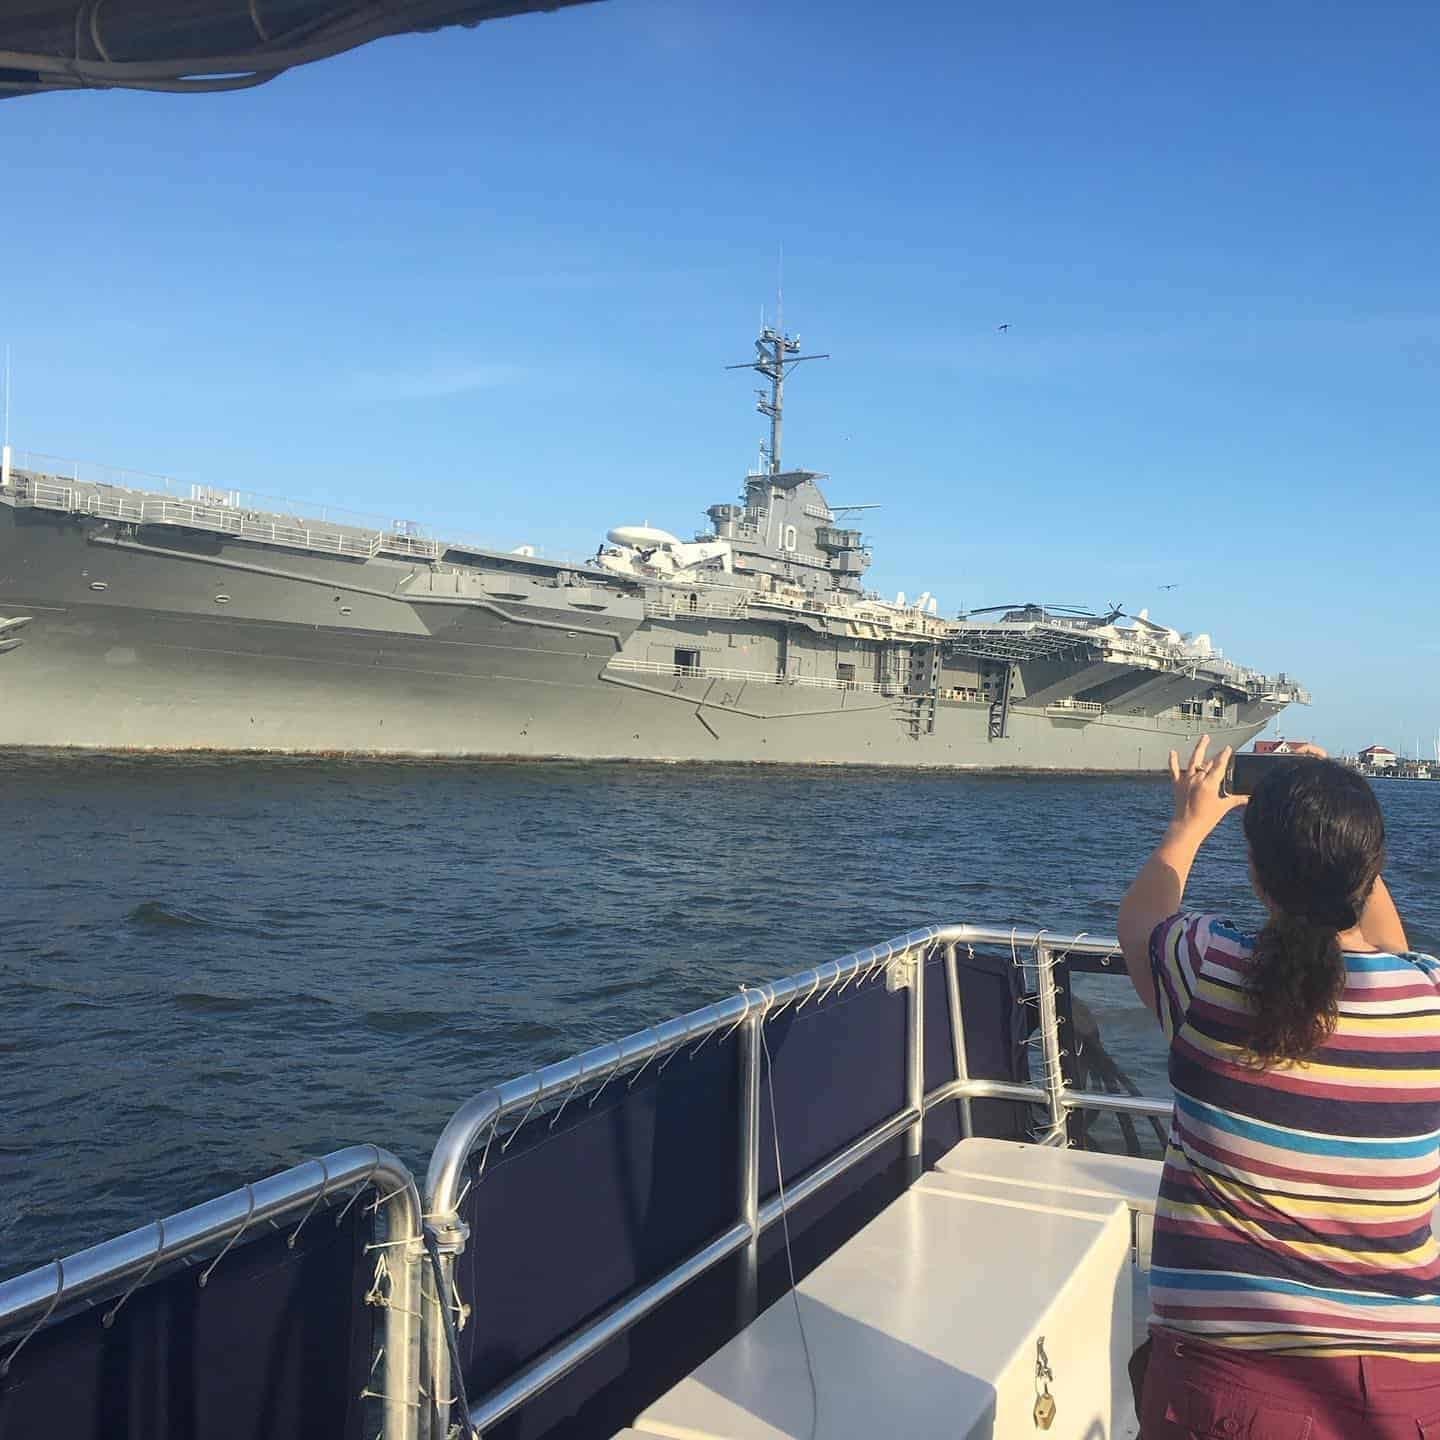 Close look at historic battle ship angled from the front. Best boat tours in Charleston, SC